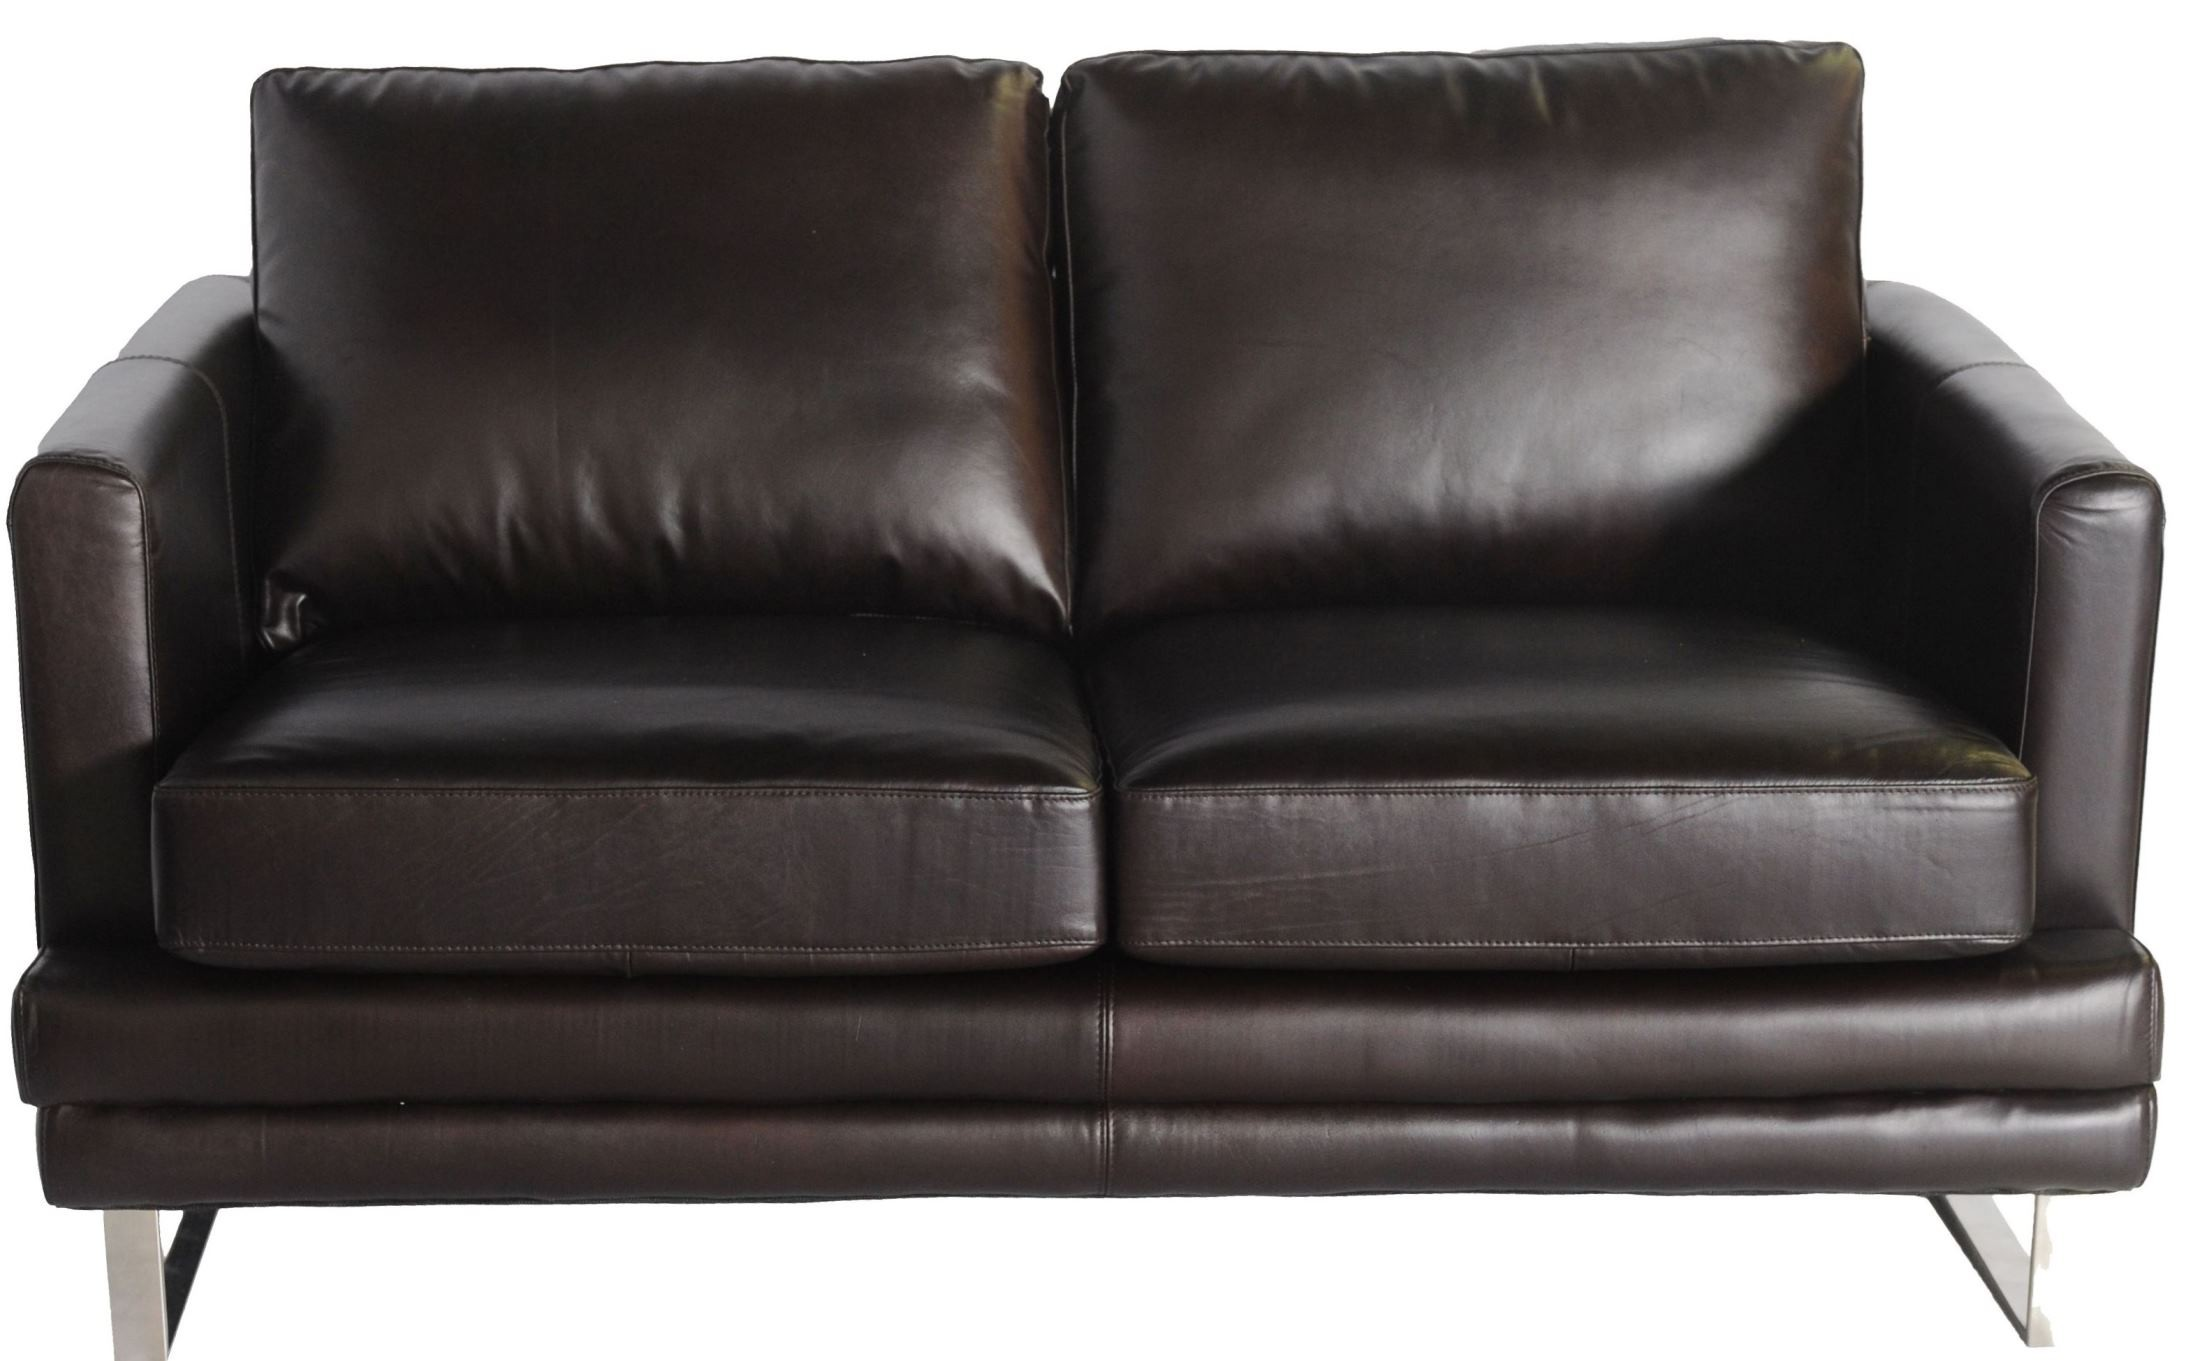 Melbourne Dark Chocolate Leather Living Room Set From Lazzaro WH 1003 30 901